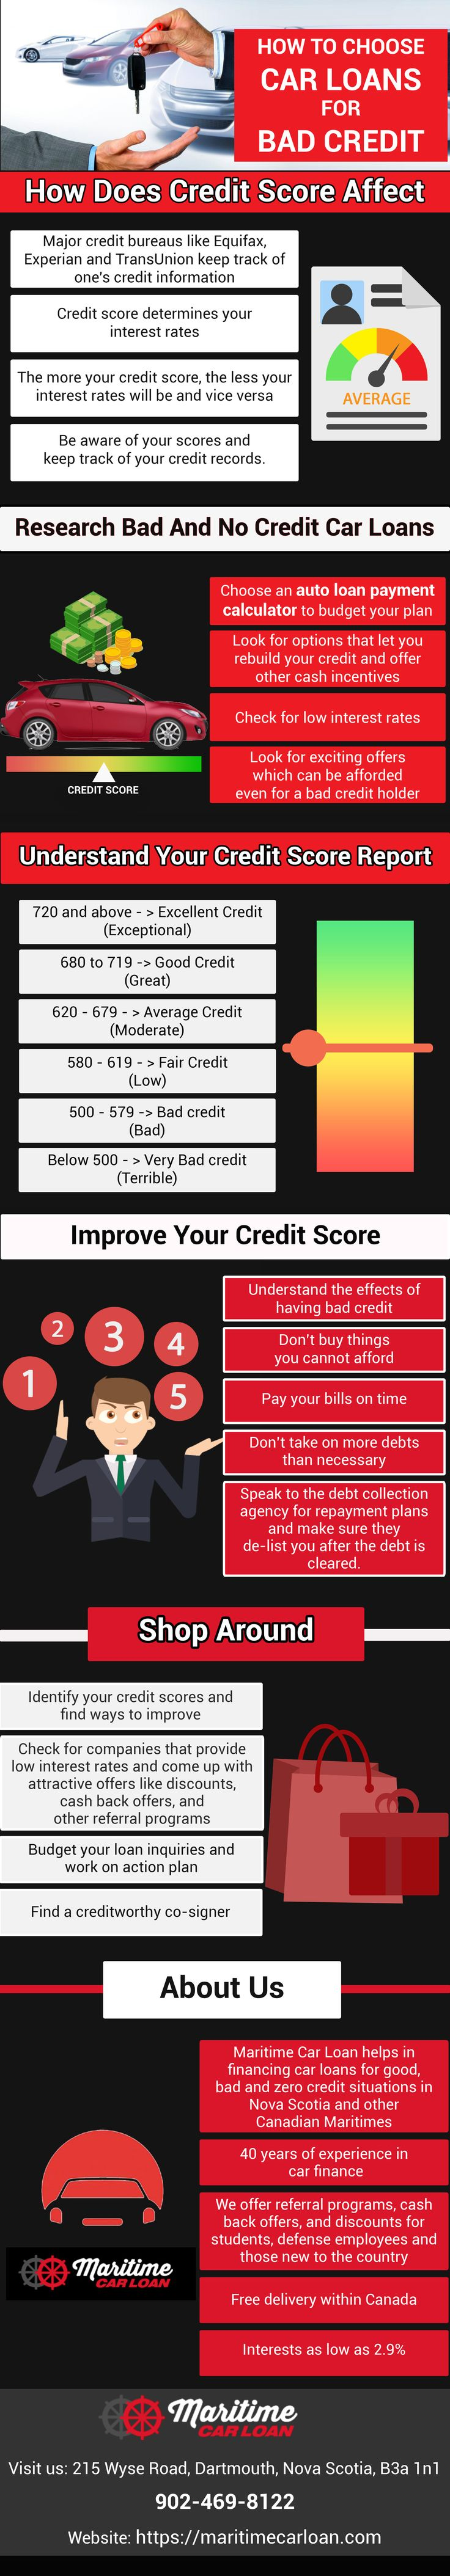 Do you have bad credit? Maritime Car Loan offers car loans for bad credit in Nova Scotia. Get car financing regardless of your credit situation. Use auto loan payment calculator to determine your monthly payments on your next new or used car loan. You can find the perfect car that fits your budget. We provide cash back offers and discounts for students. Free delivery within Canada! For more information visit us at https://maritimecarloan.com/ to learn more.